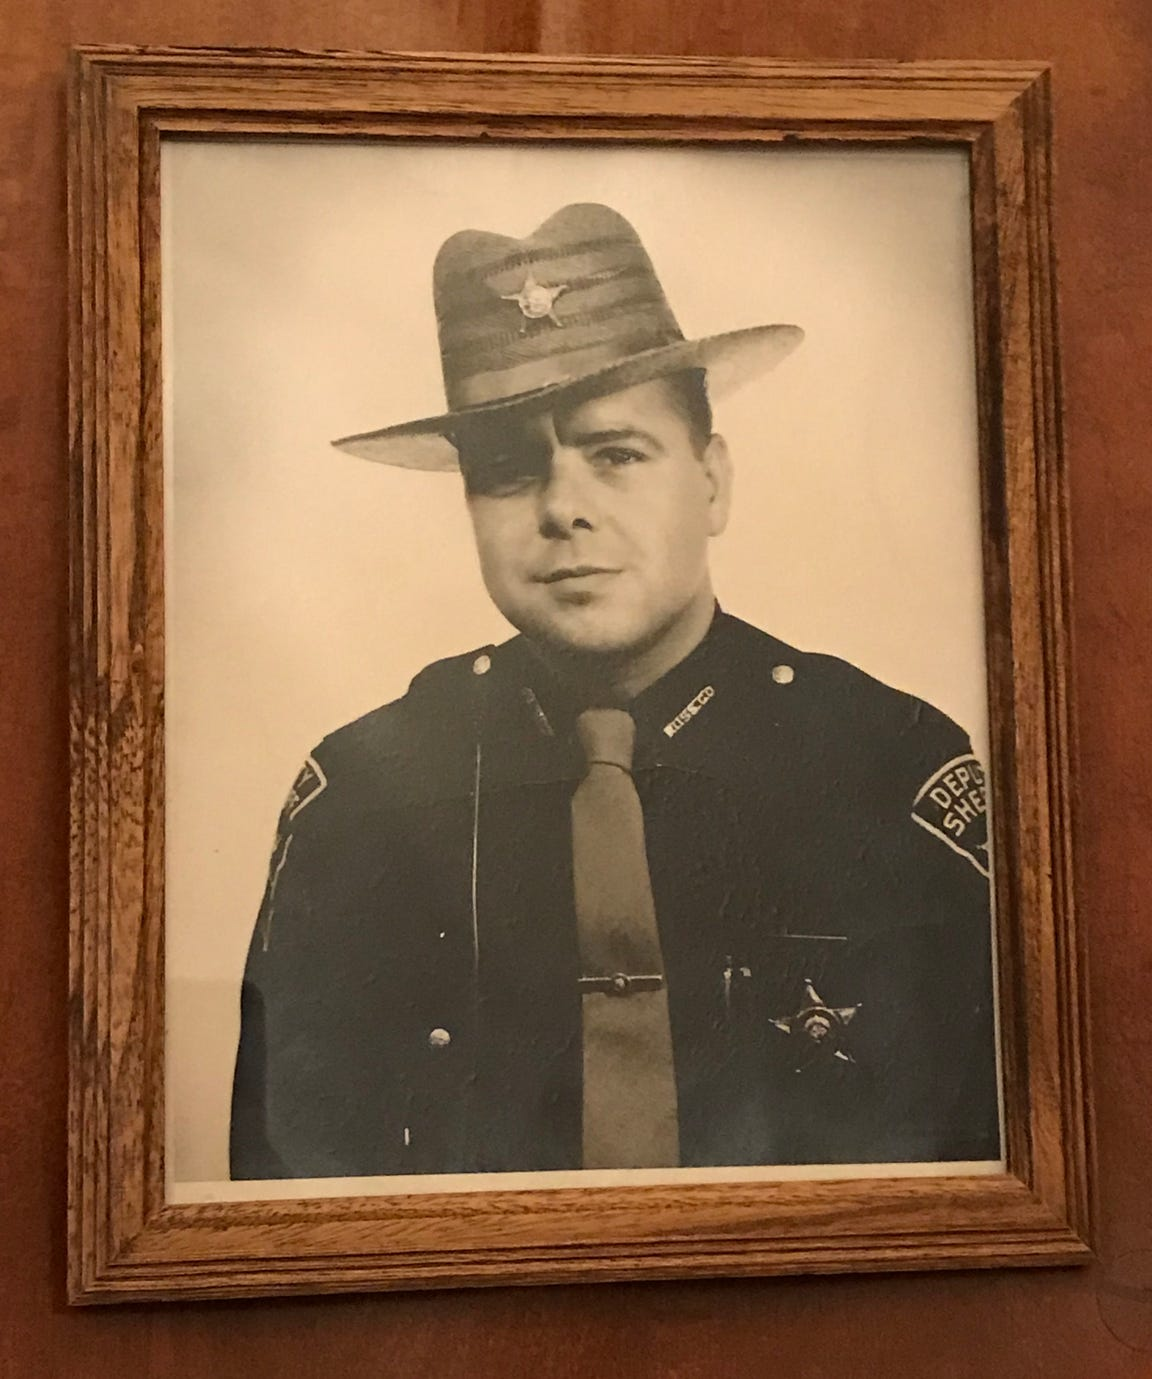 A framed black and white photo of Doug Ray in his Ross County sheriff's uniform in the 1960s is among several photos capturing moments of his and his family's lives on display throughout his and his wife Phyllis Ray's home. Ray joined the Ross County Sheriff's Department in 1959 and has maintained his commission and certification now for 60 years.